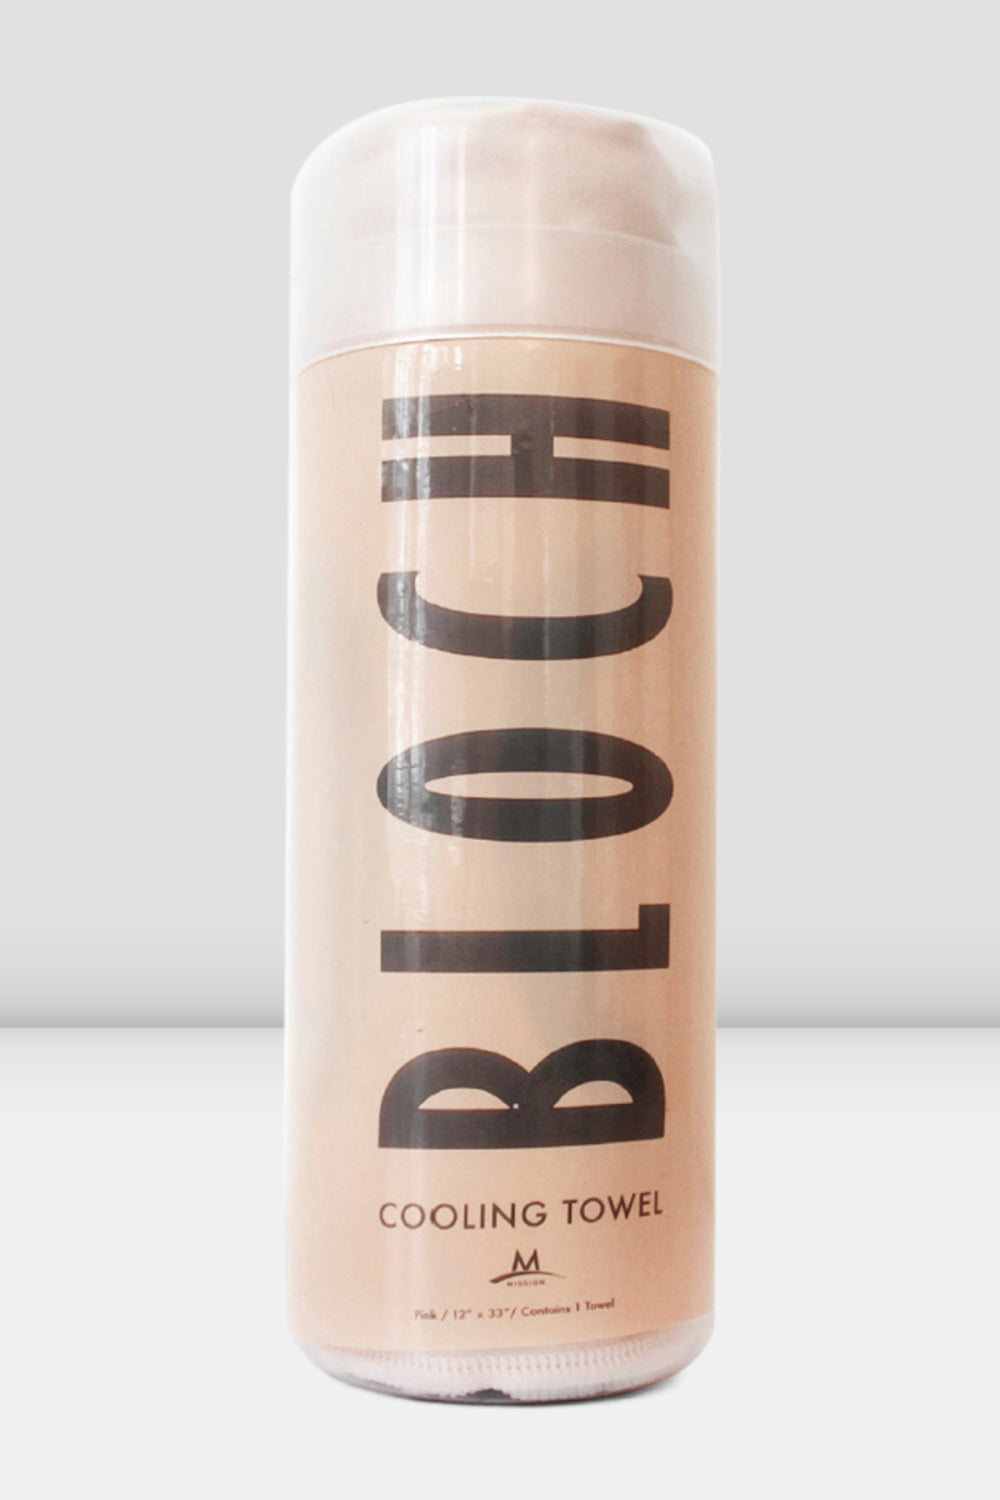 Pink Bloch Cooling Towel single product in packaging